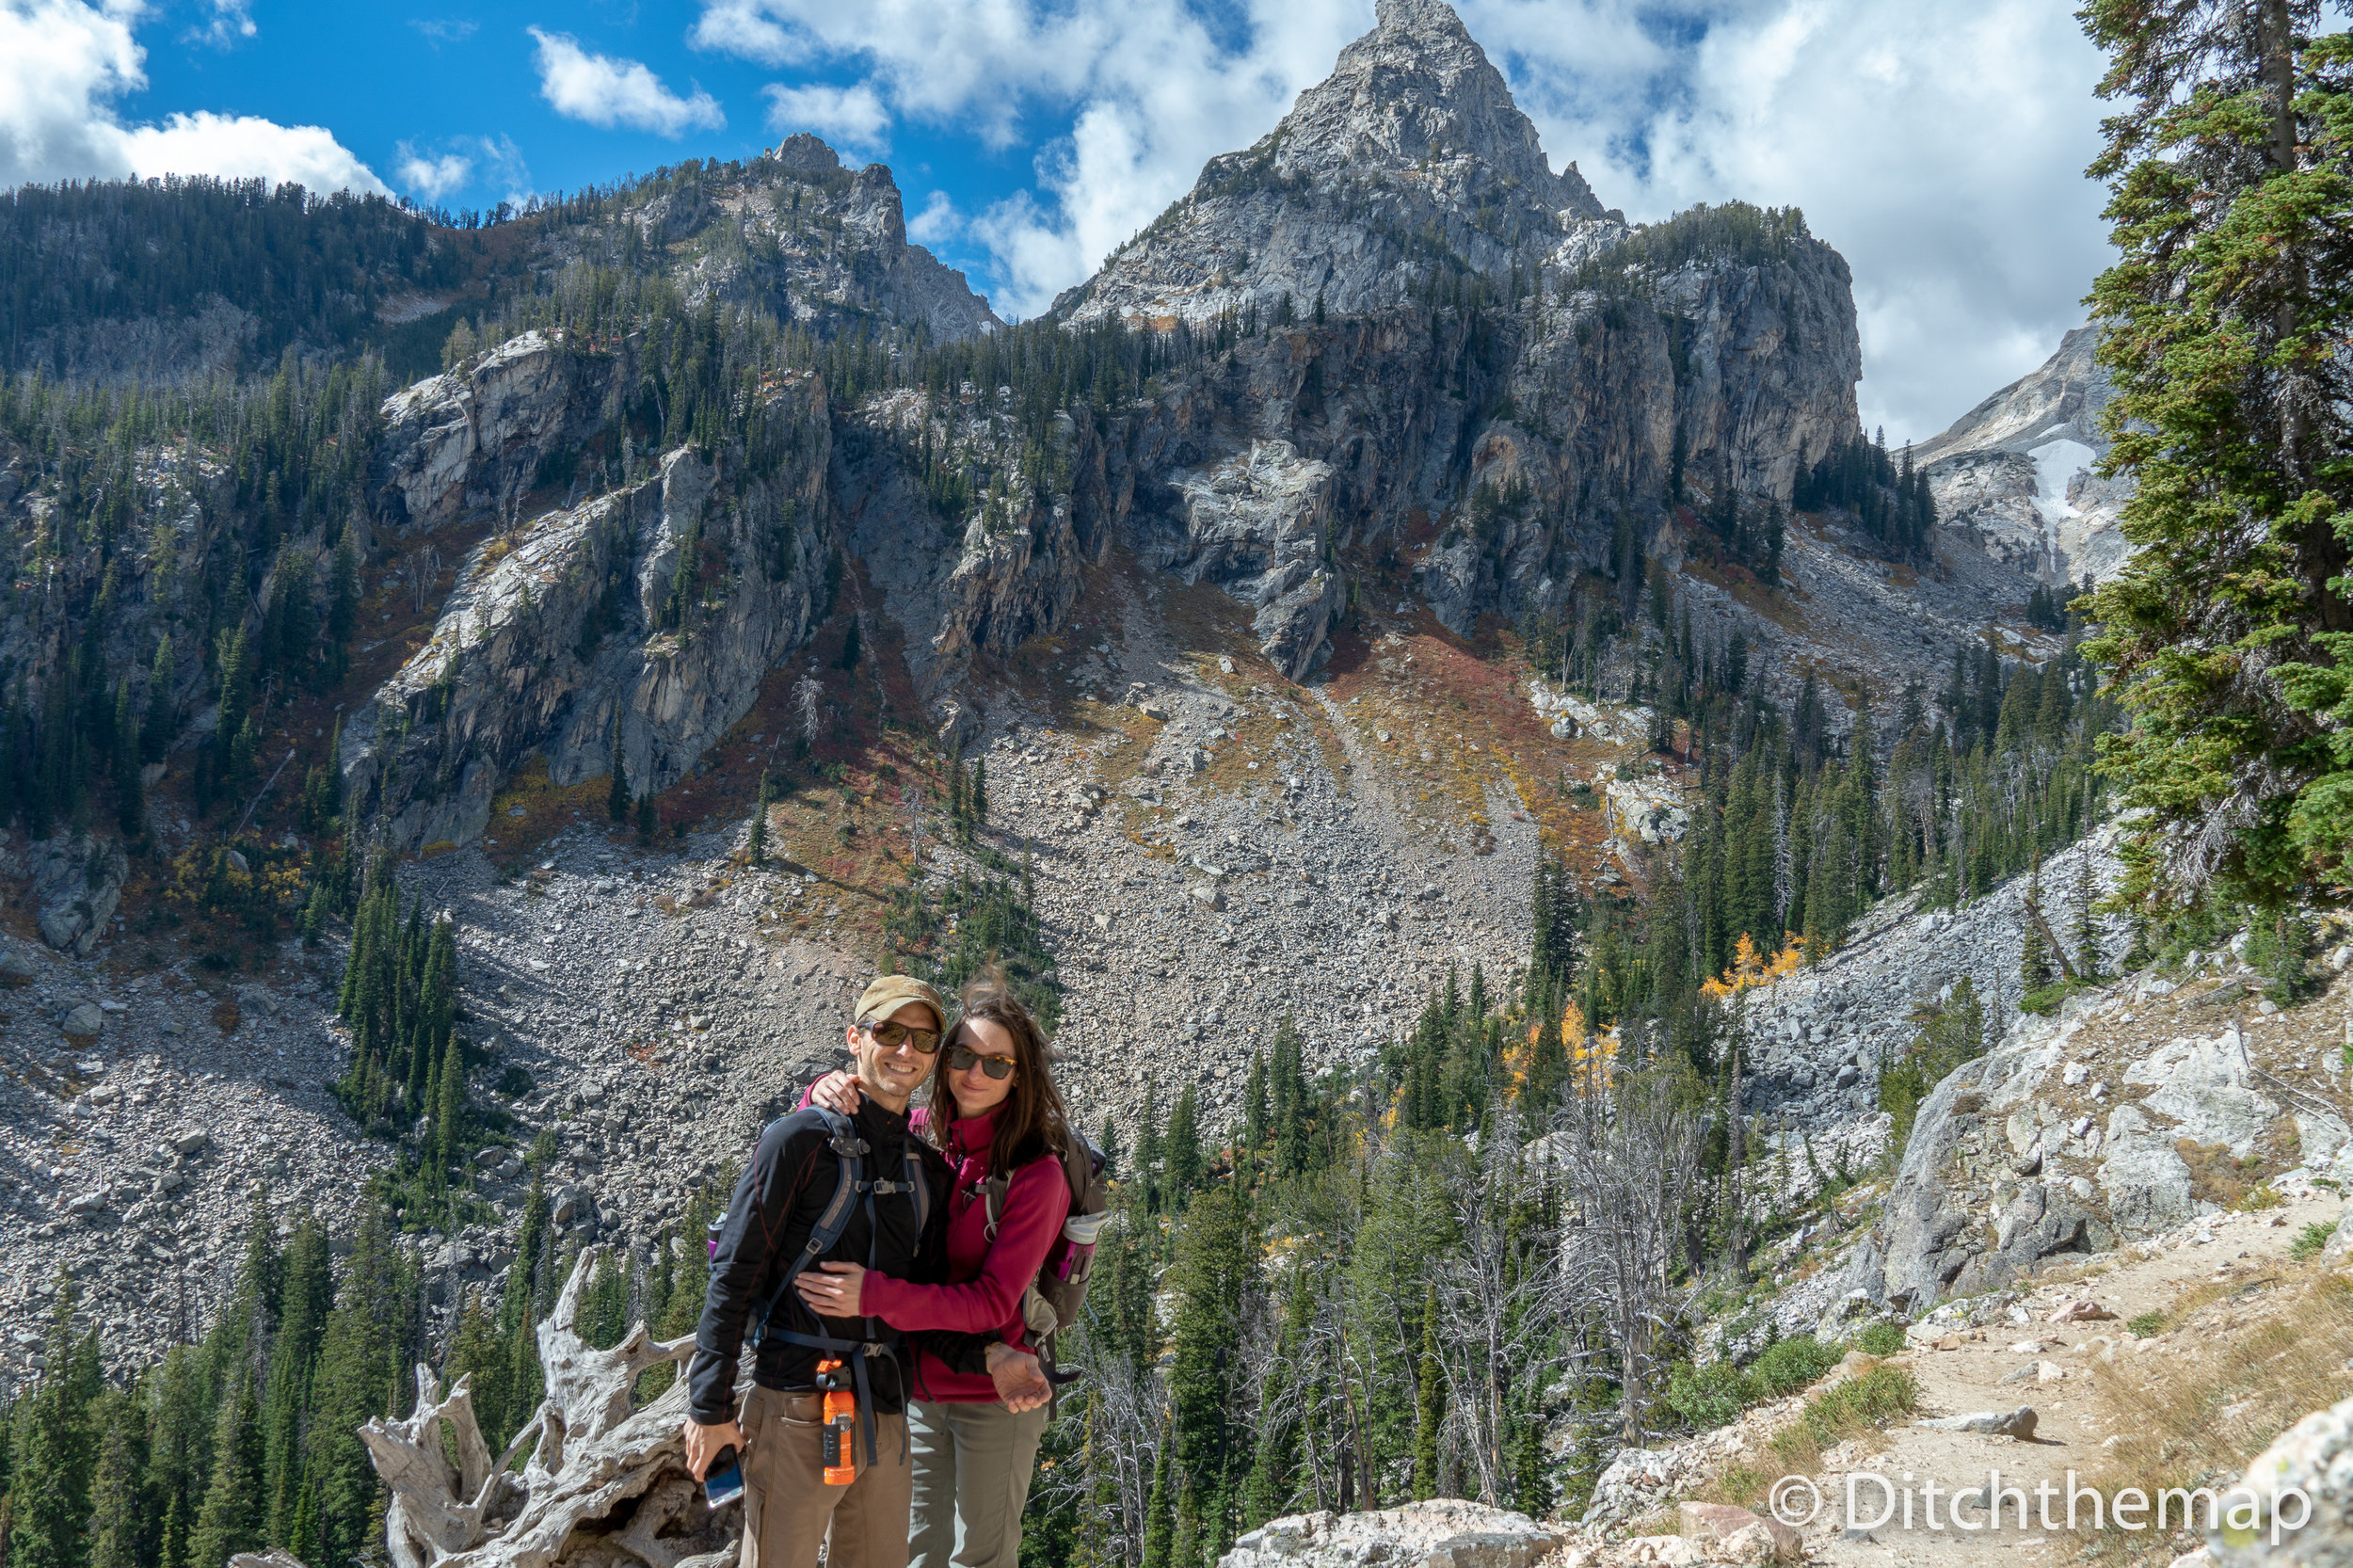 The Grand Tetons National Park in Wyoming USA